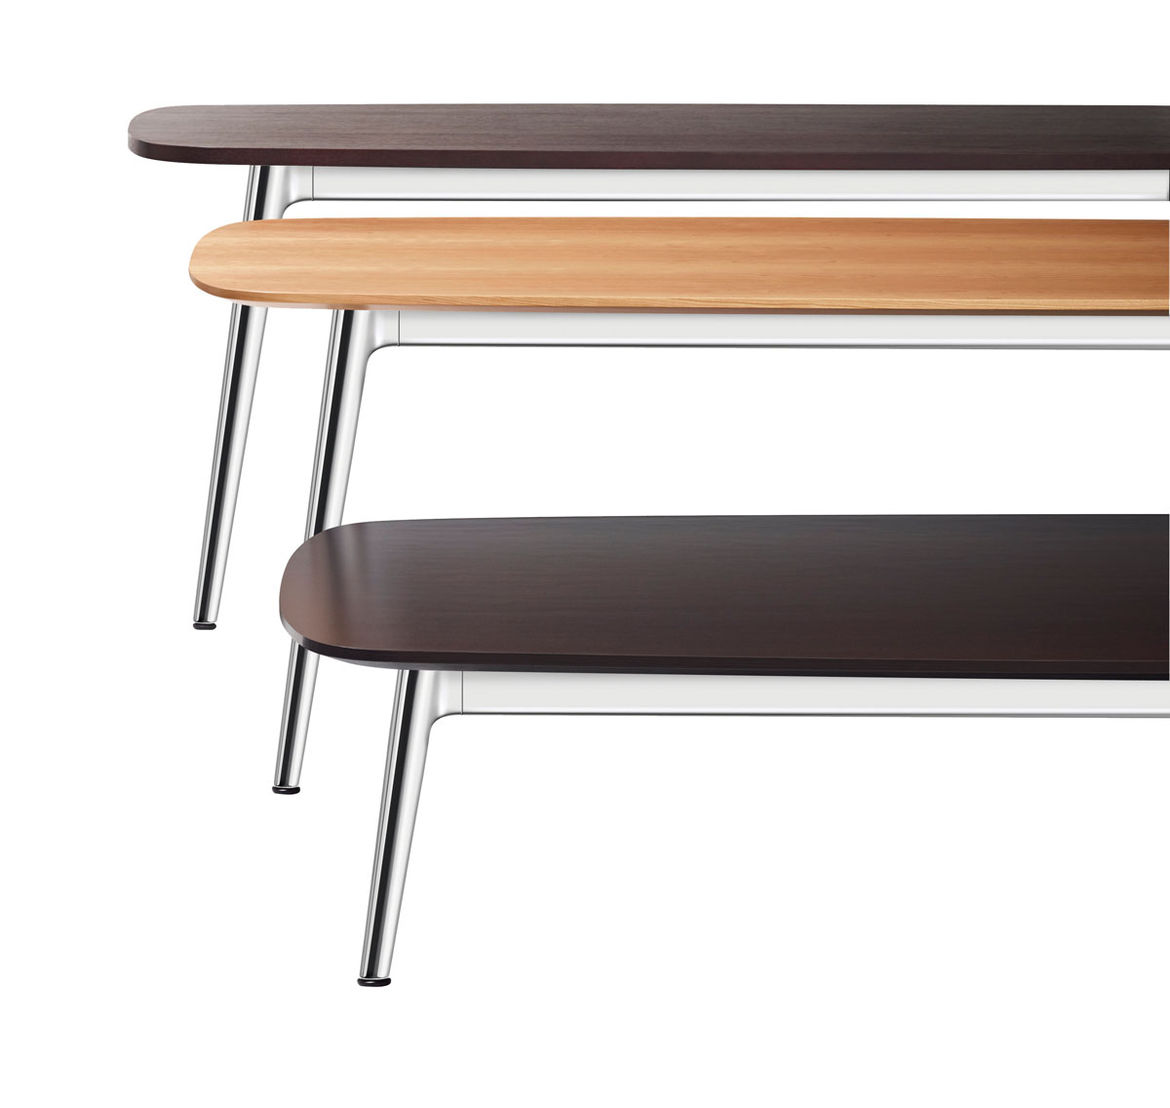 Syz Conference Table by Keilhauer at NeoCon 2014